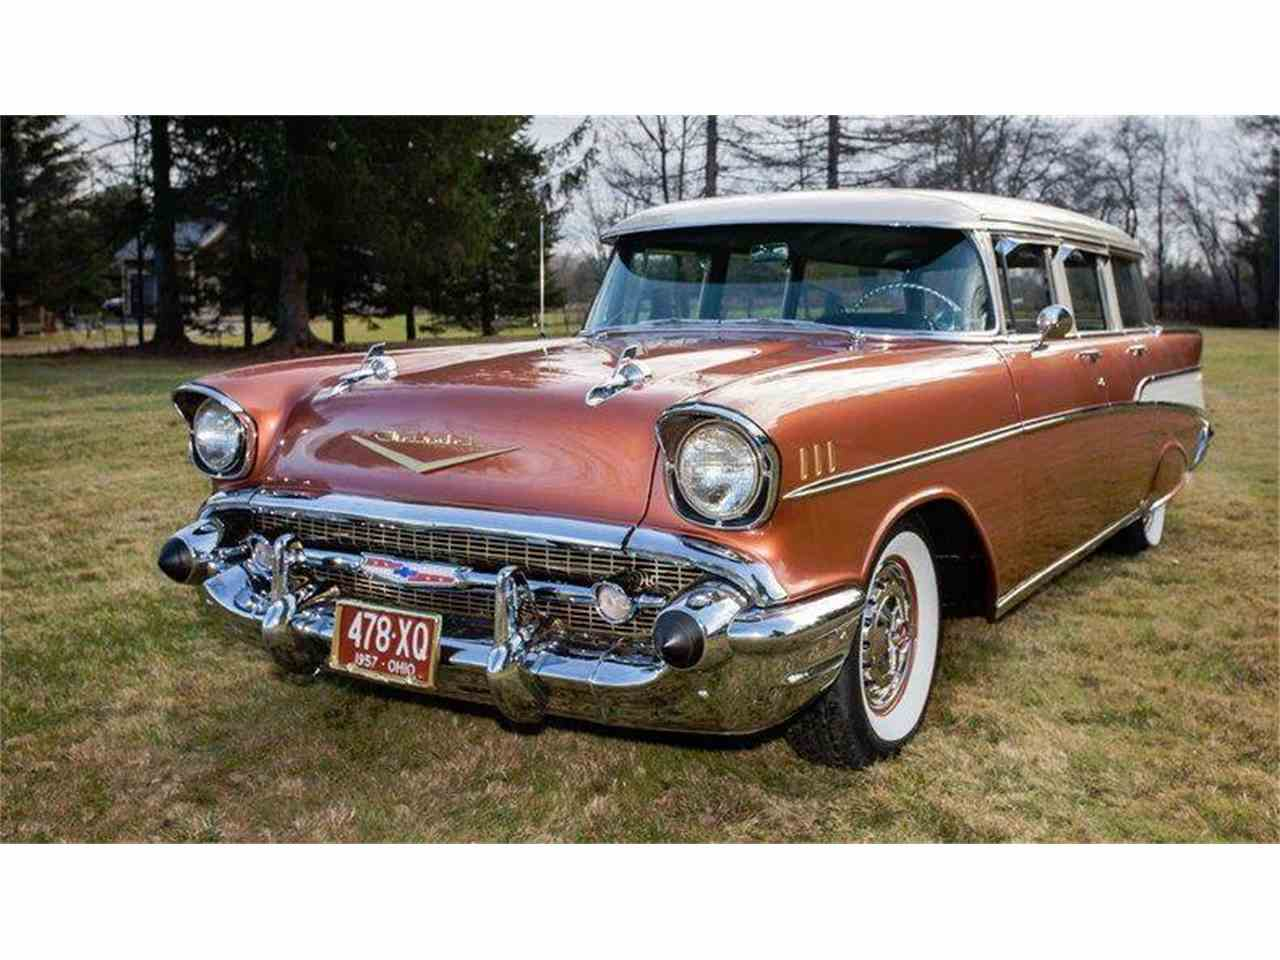 All Chevy 1957 chevy wagon for sale : 1957 Chevrolet Bel Air for Sale | ClassicCars.com | CC-1003369